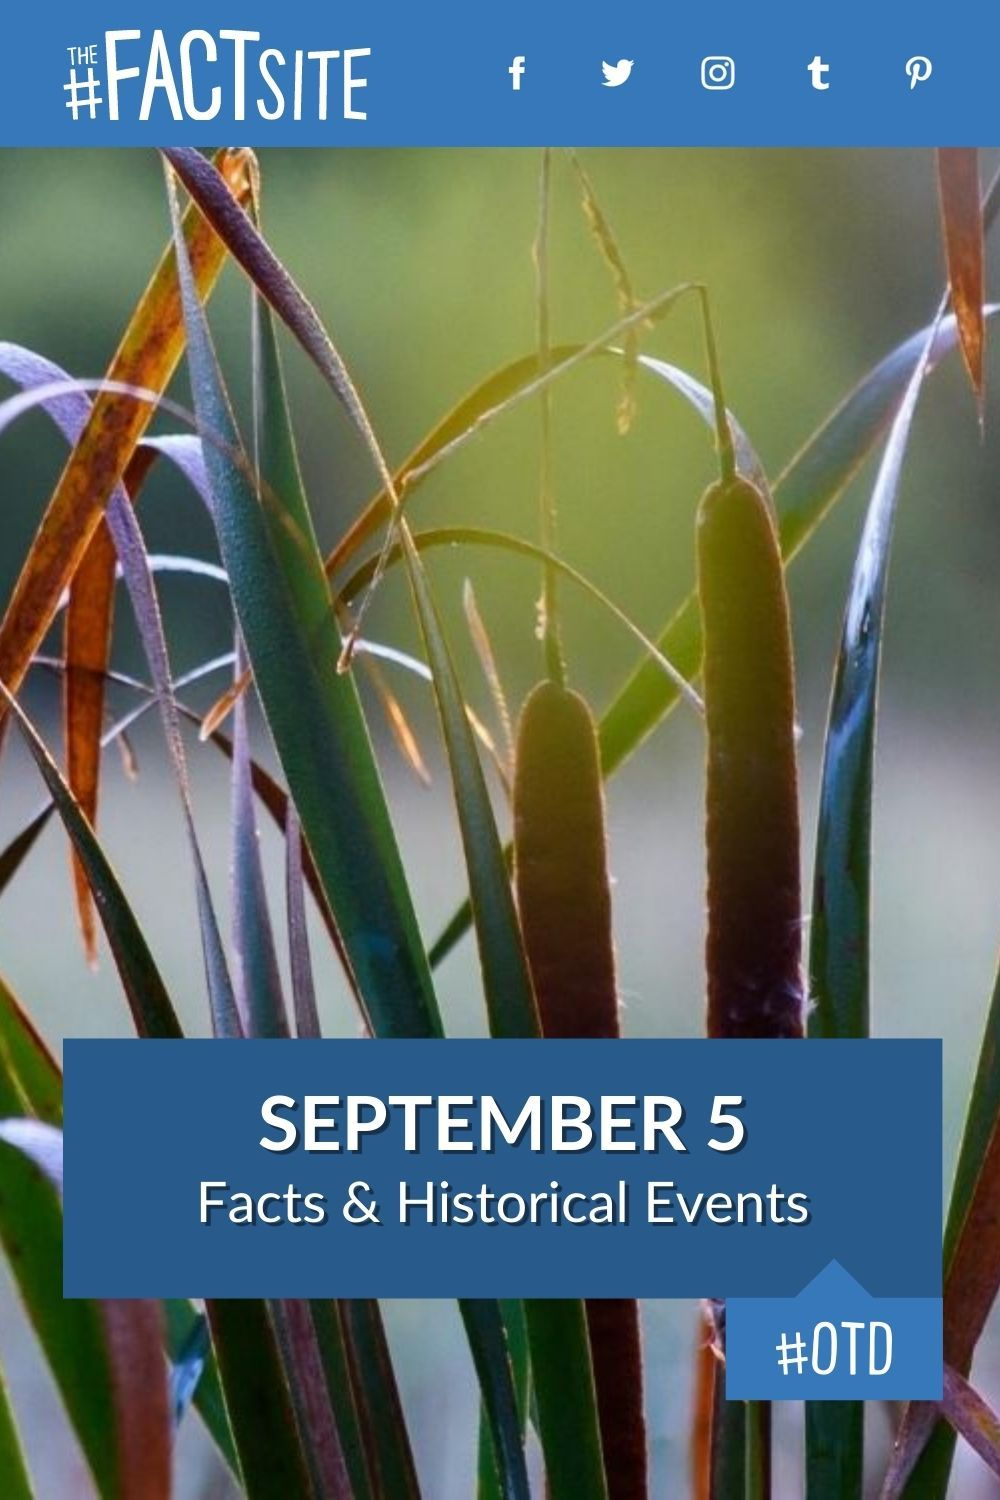 Facts & Historic Events That Happened on September 5